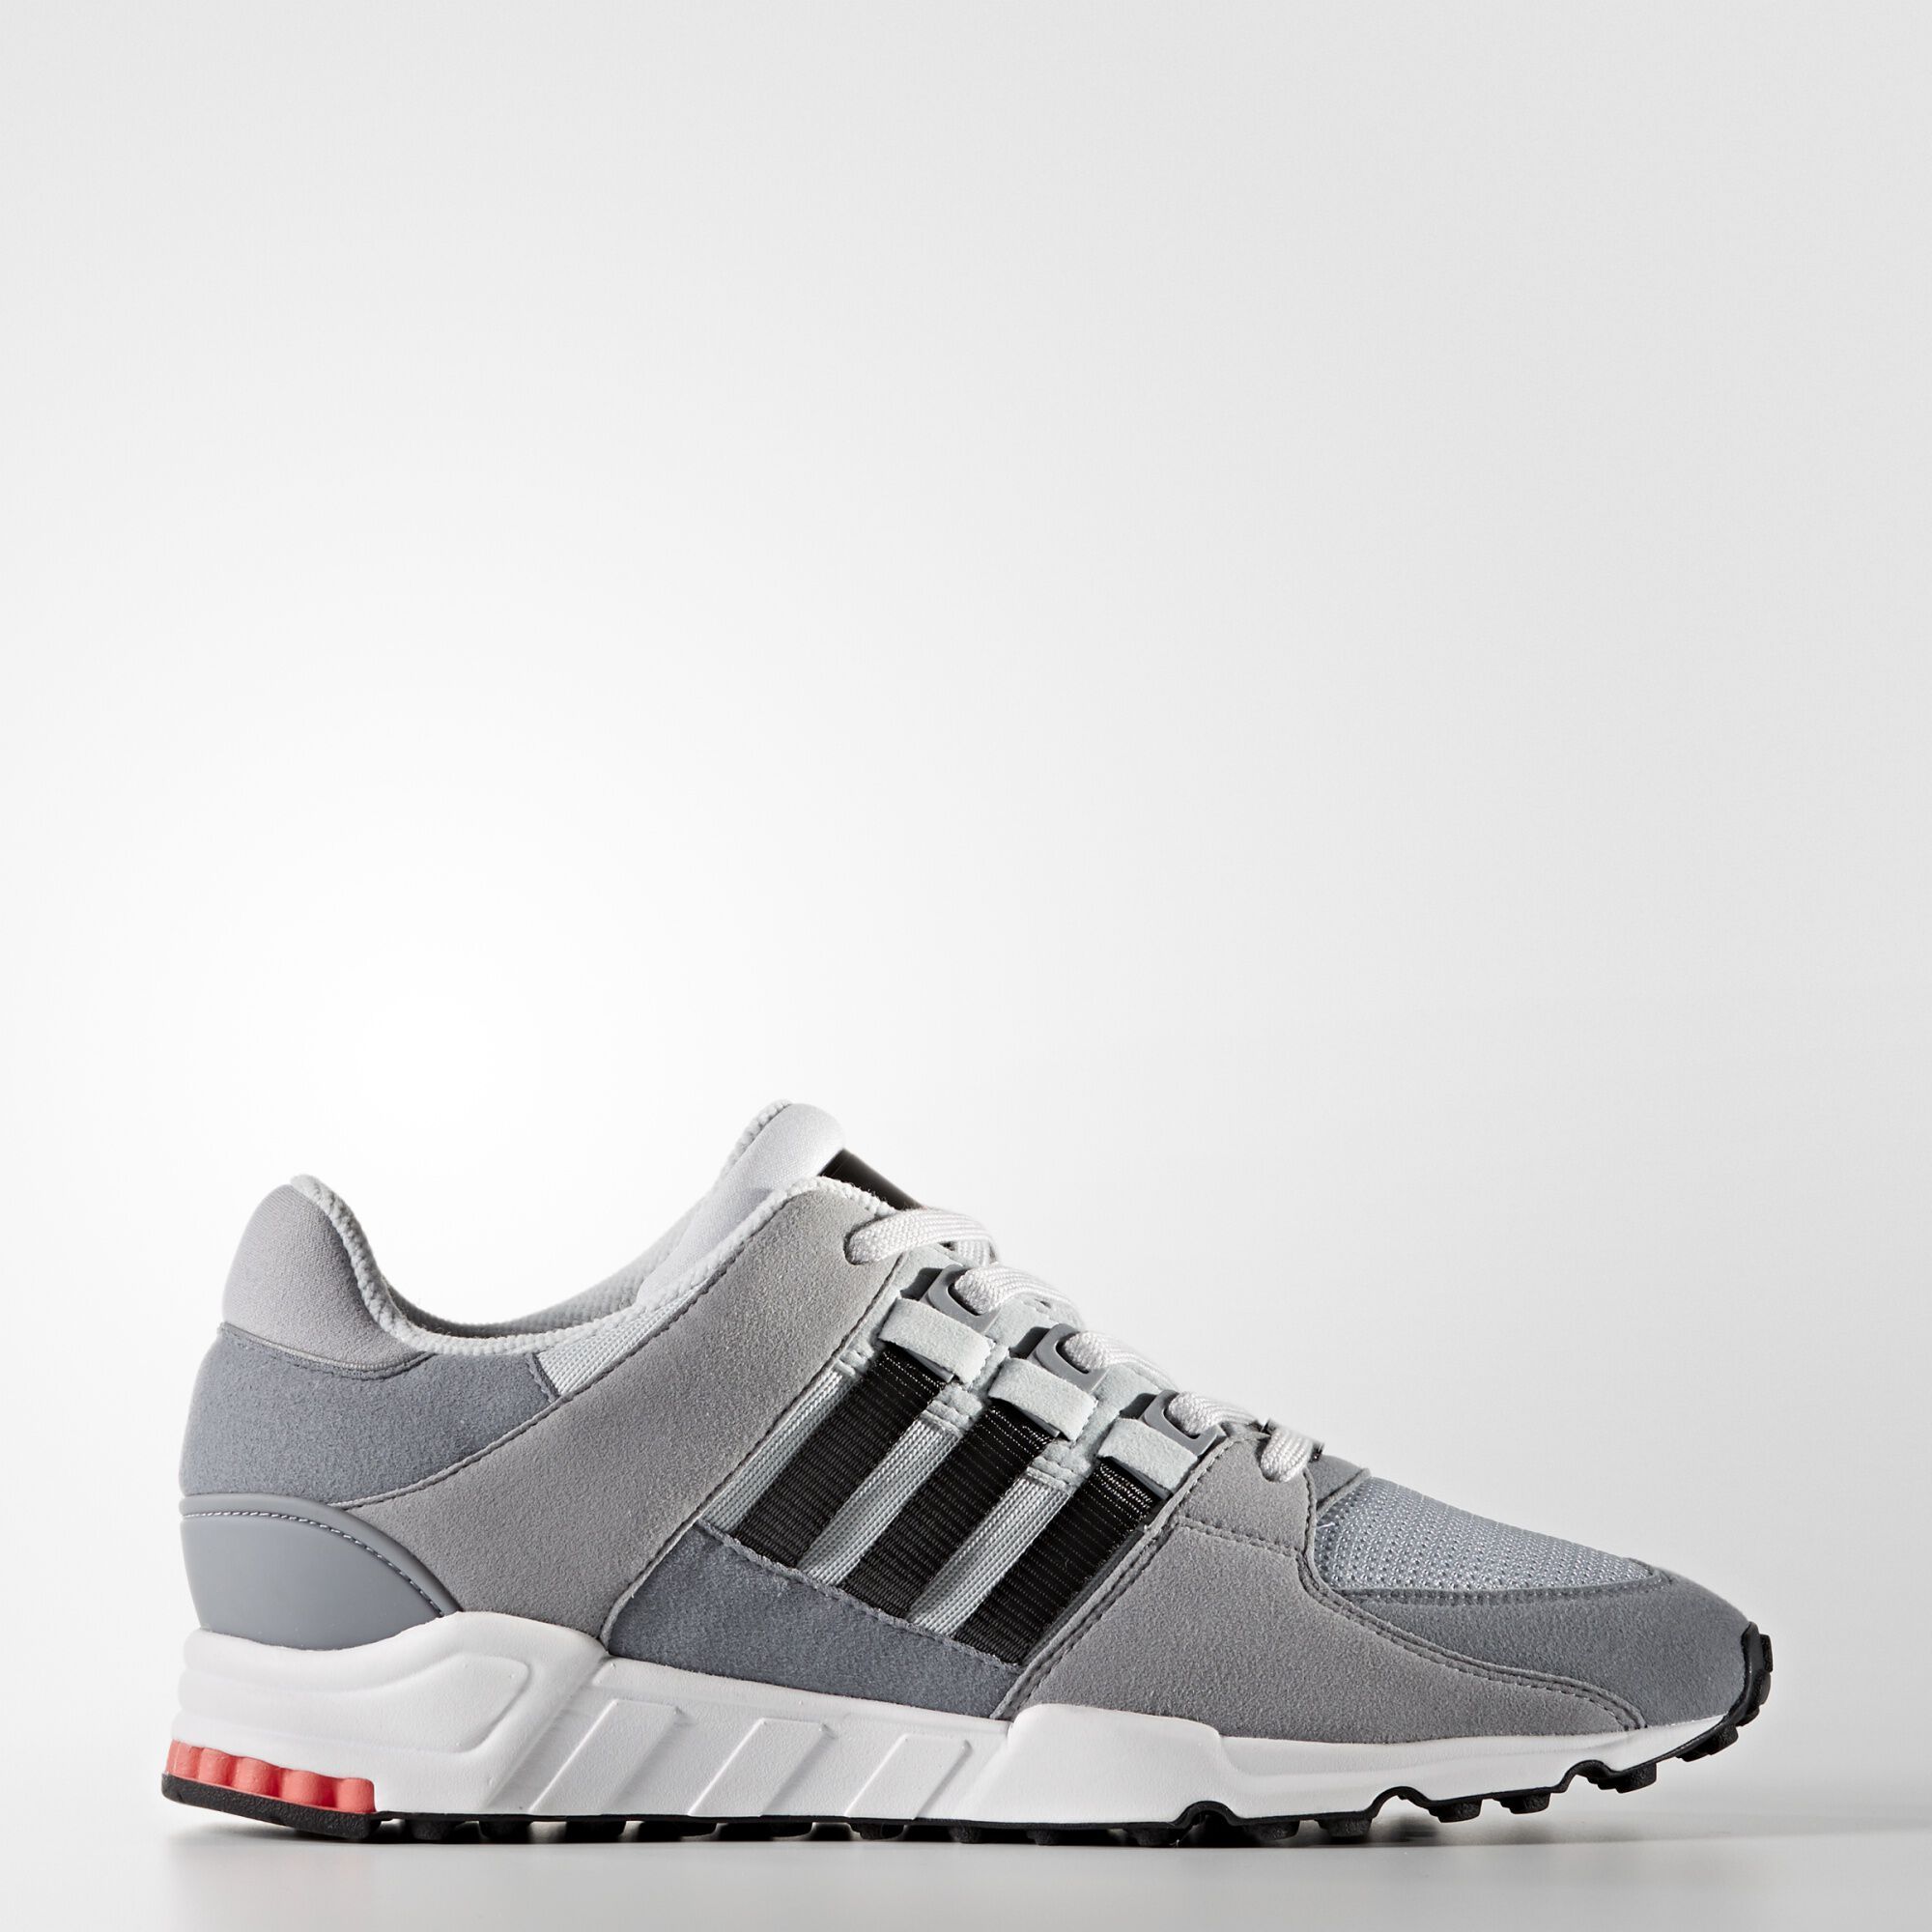 ADIDAS ORIGINALS EQT ADV SUPPORT WHITE BLACK MENS SIZE